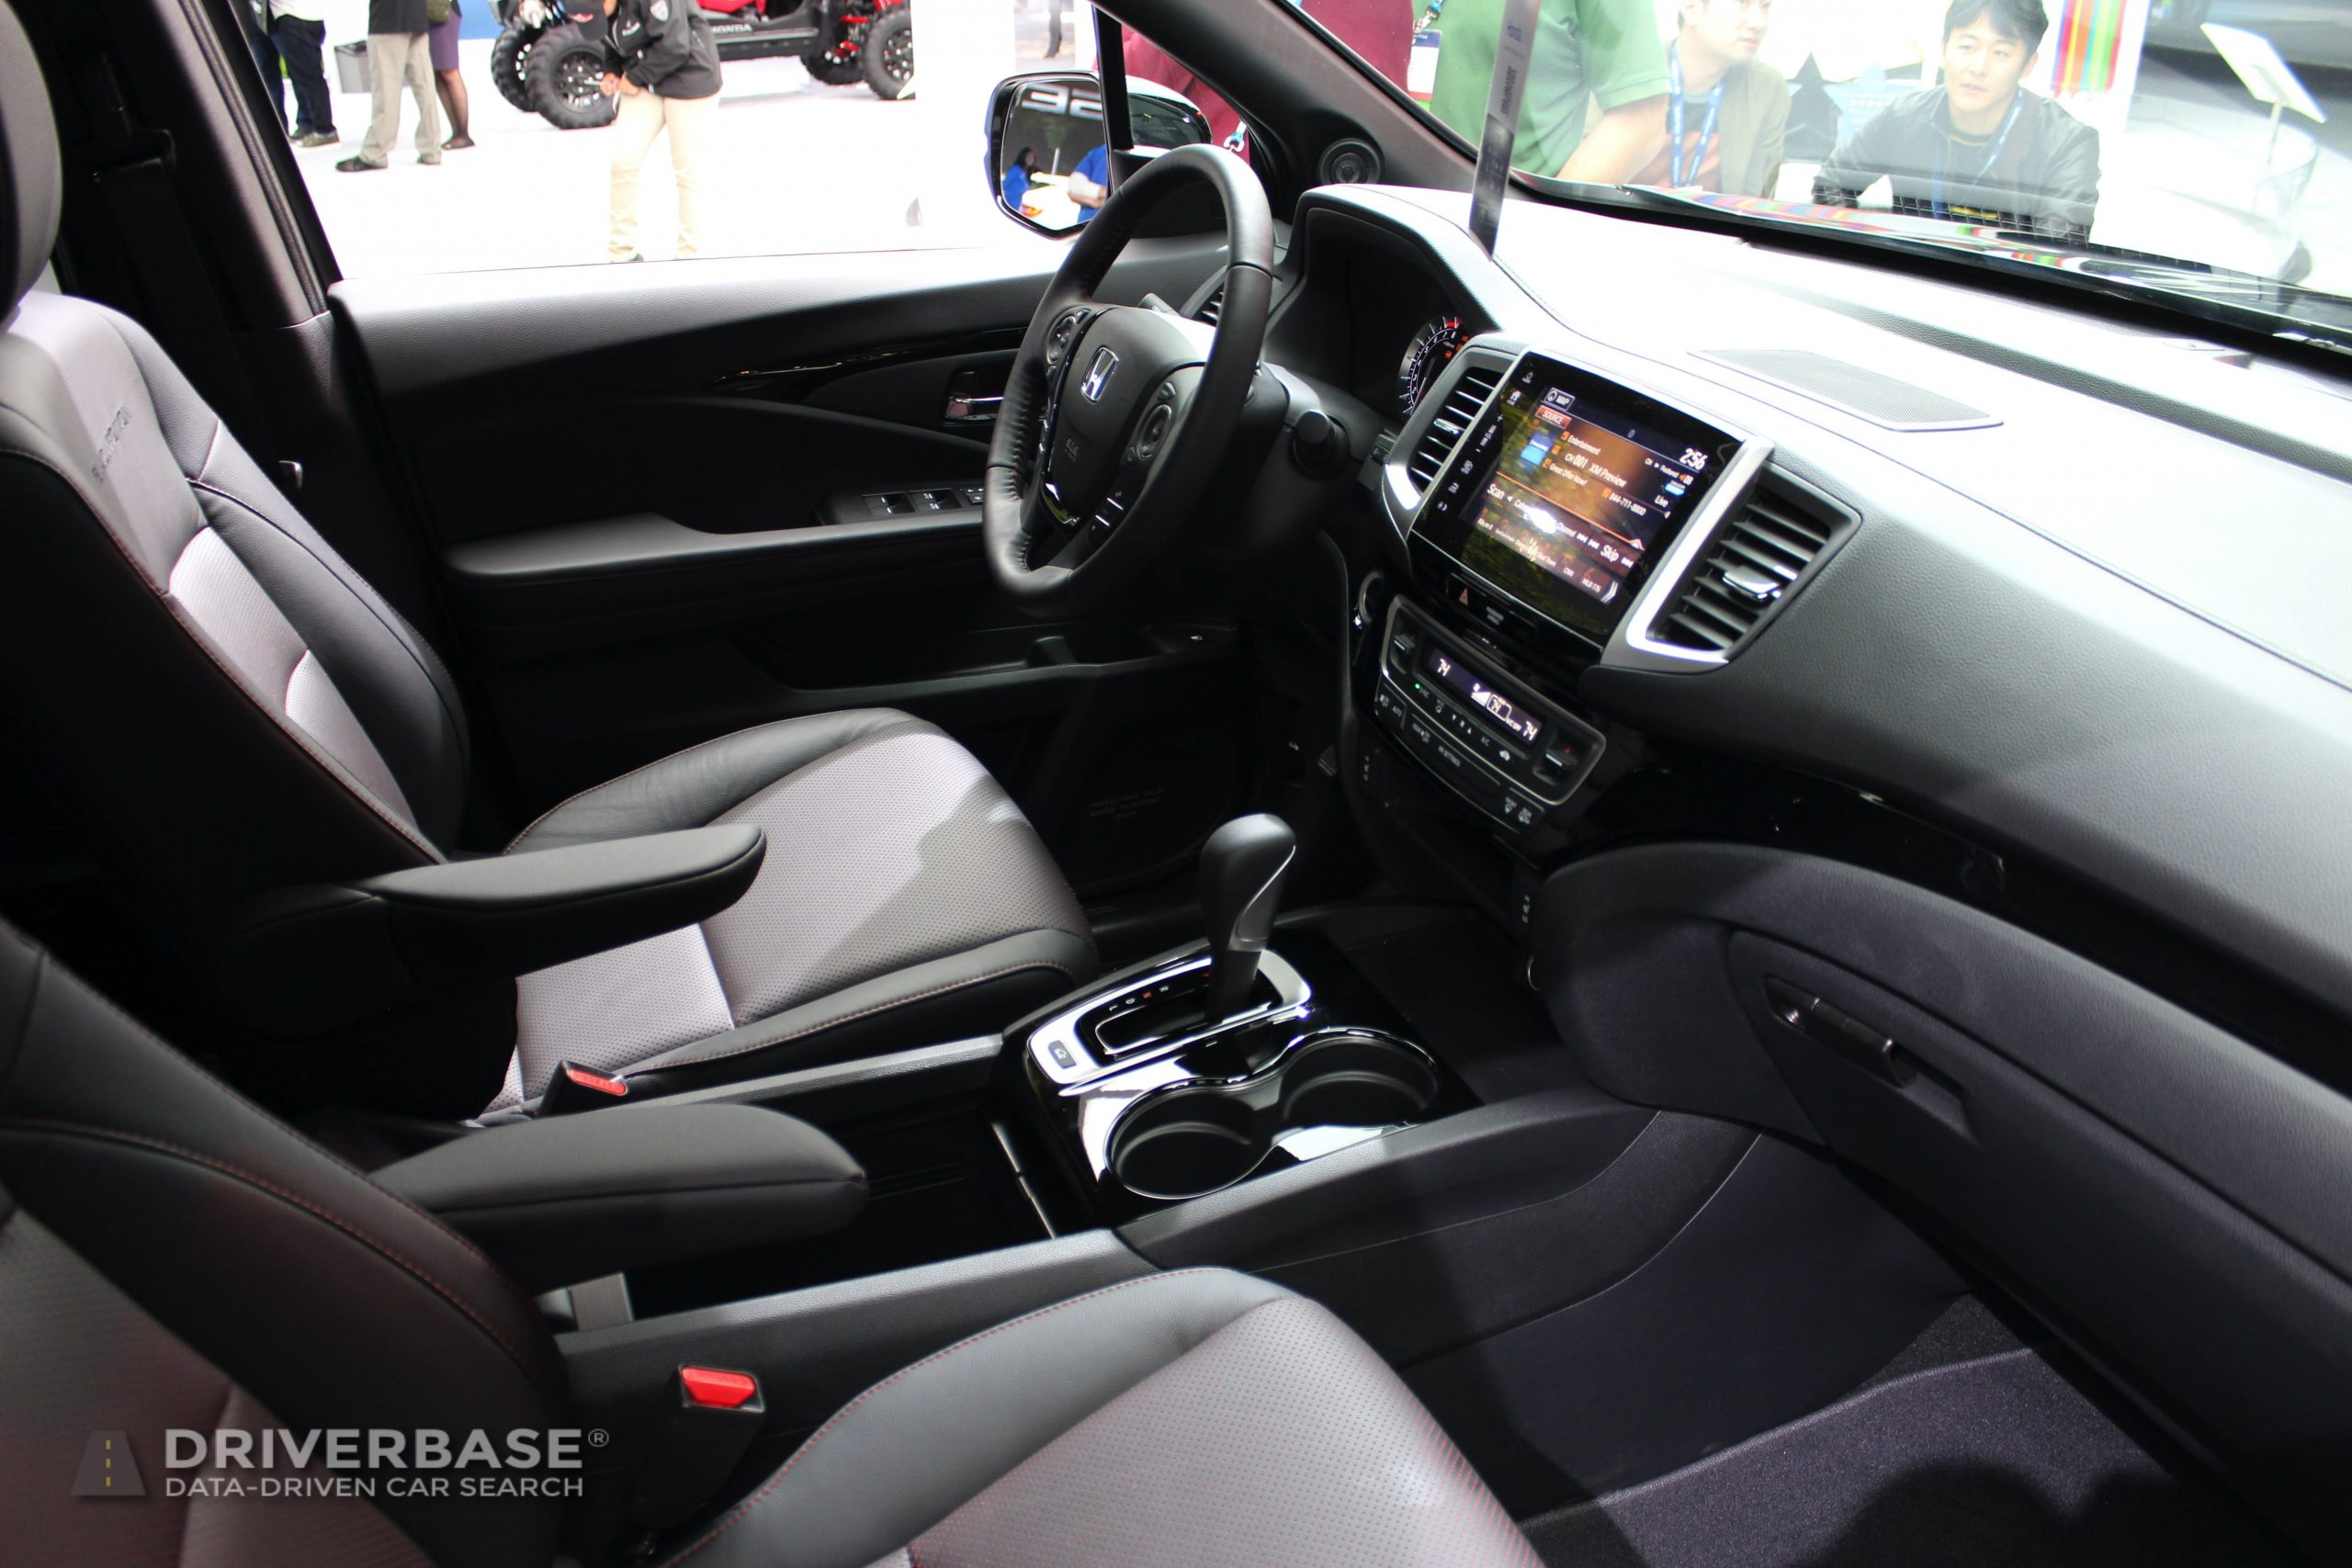 Cars For Sale Los Angeles >> 2020 Honda Ridgeline All Wheel Drive at the 2019 Los Angeles Auto Show – Driverbase